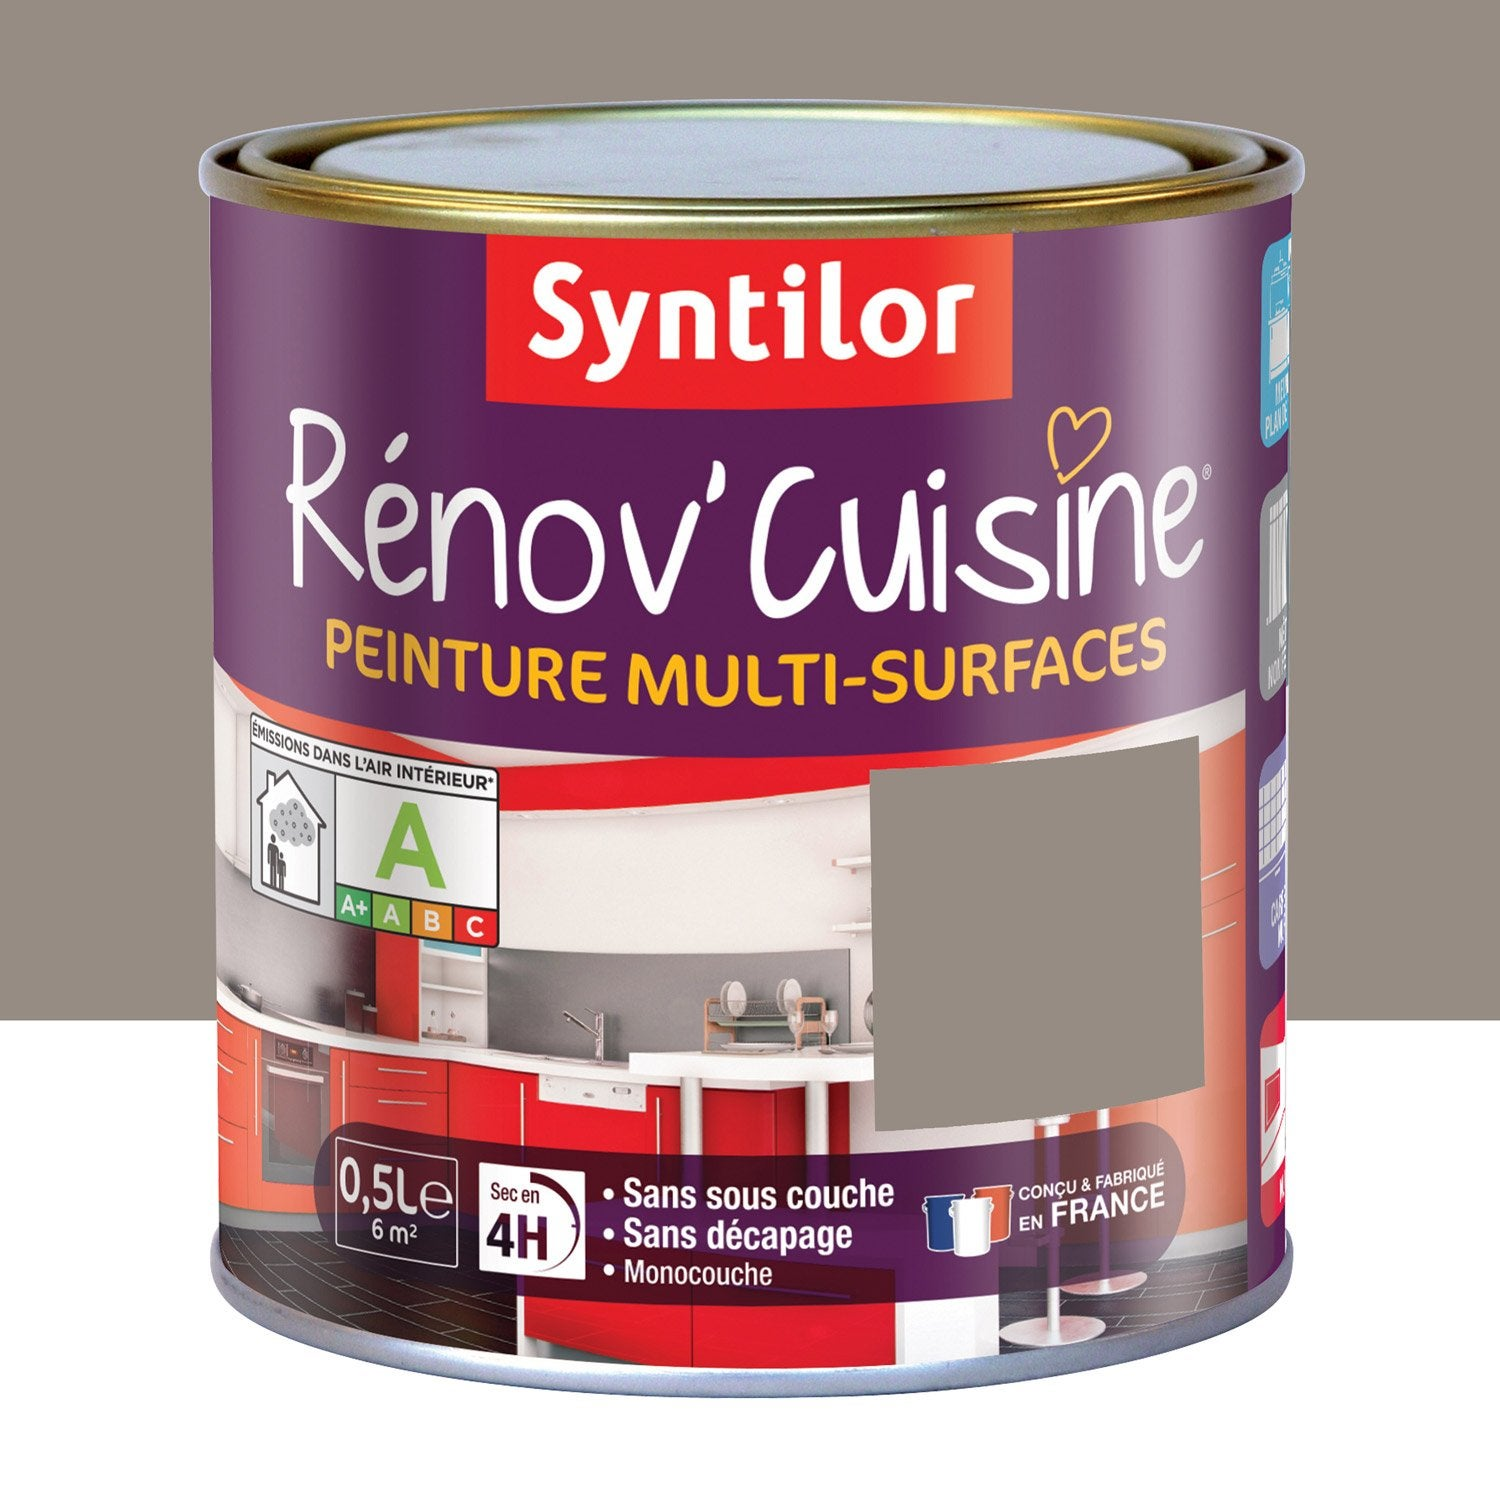 Peinture de r novation r nov 39 cuisine syntilor macaron 0 for Leroy merlin renovation cuisine